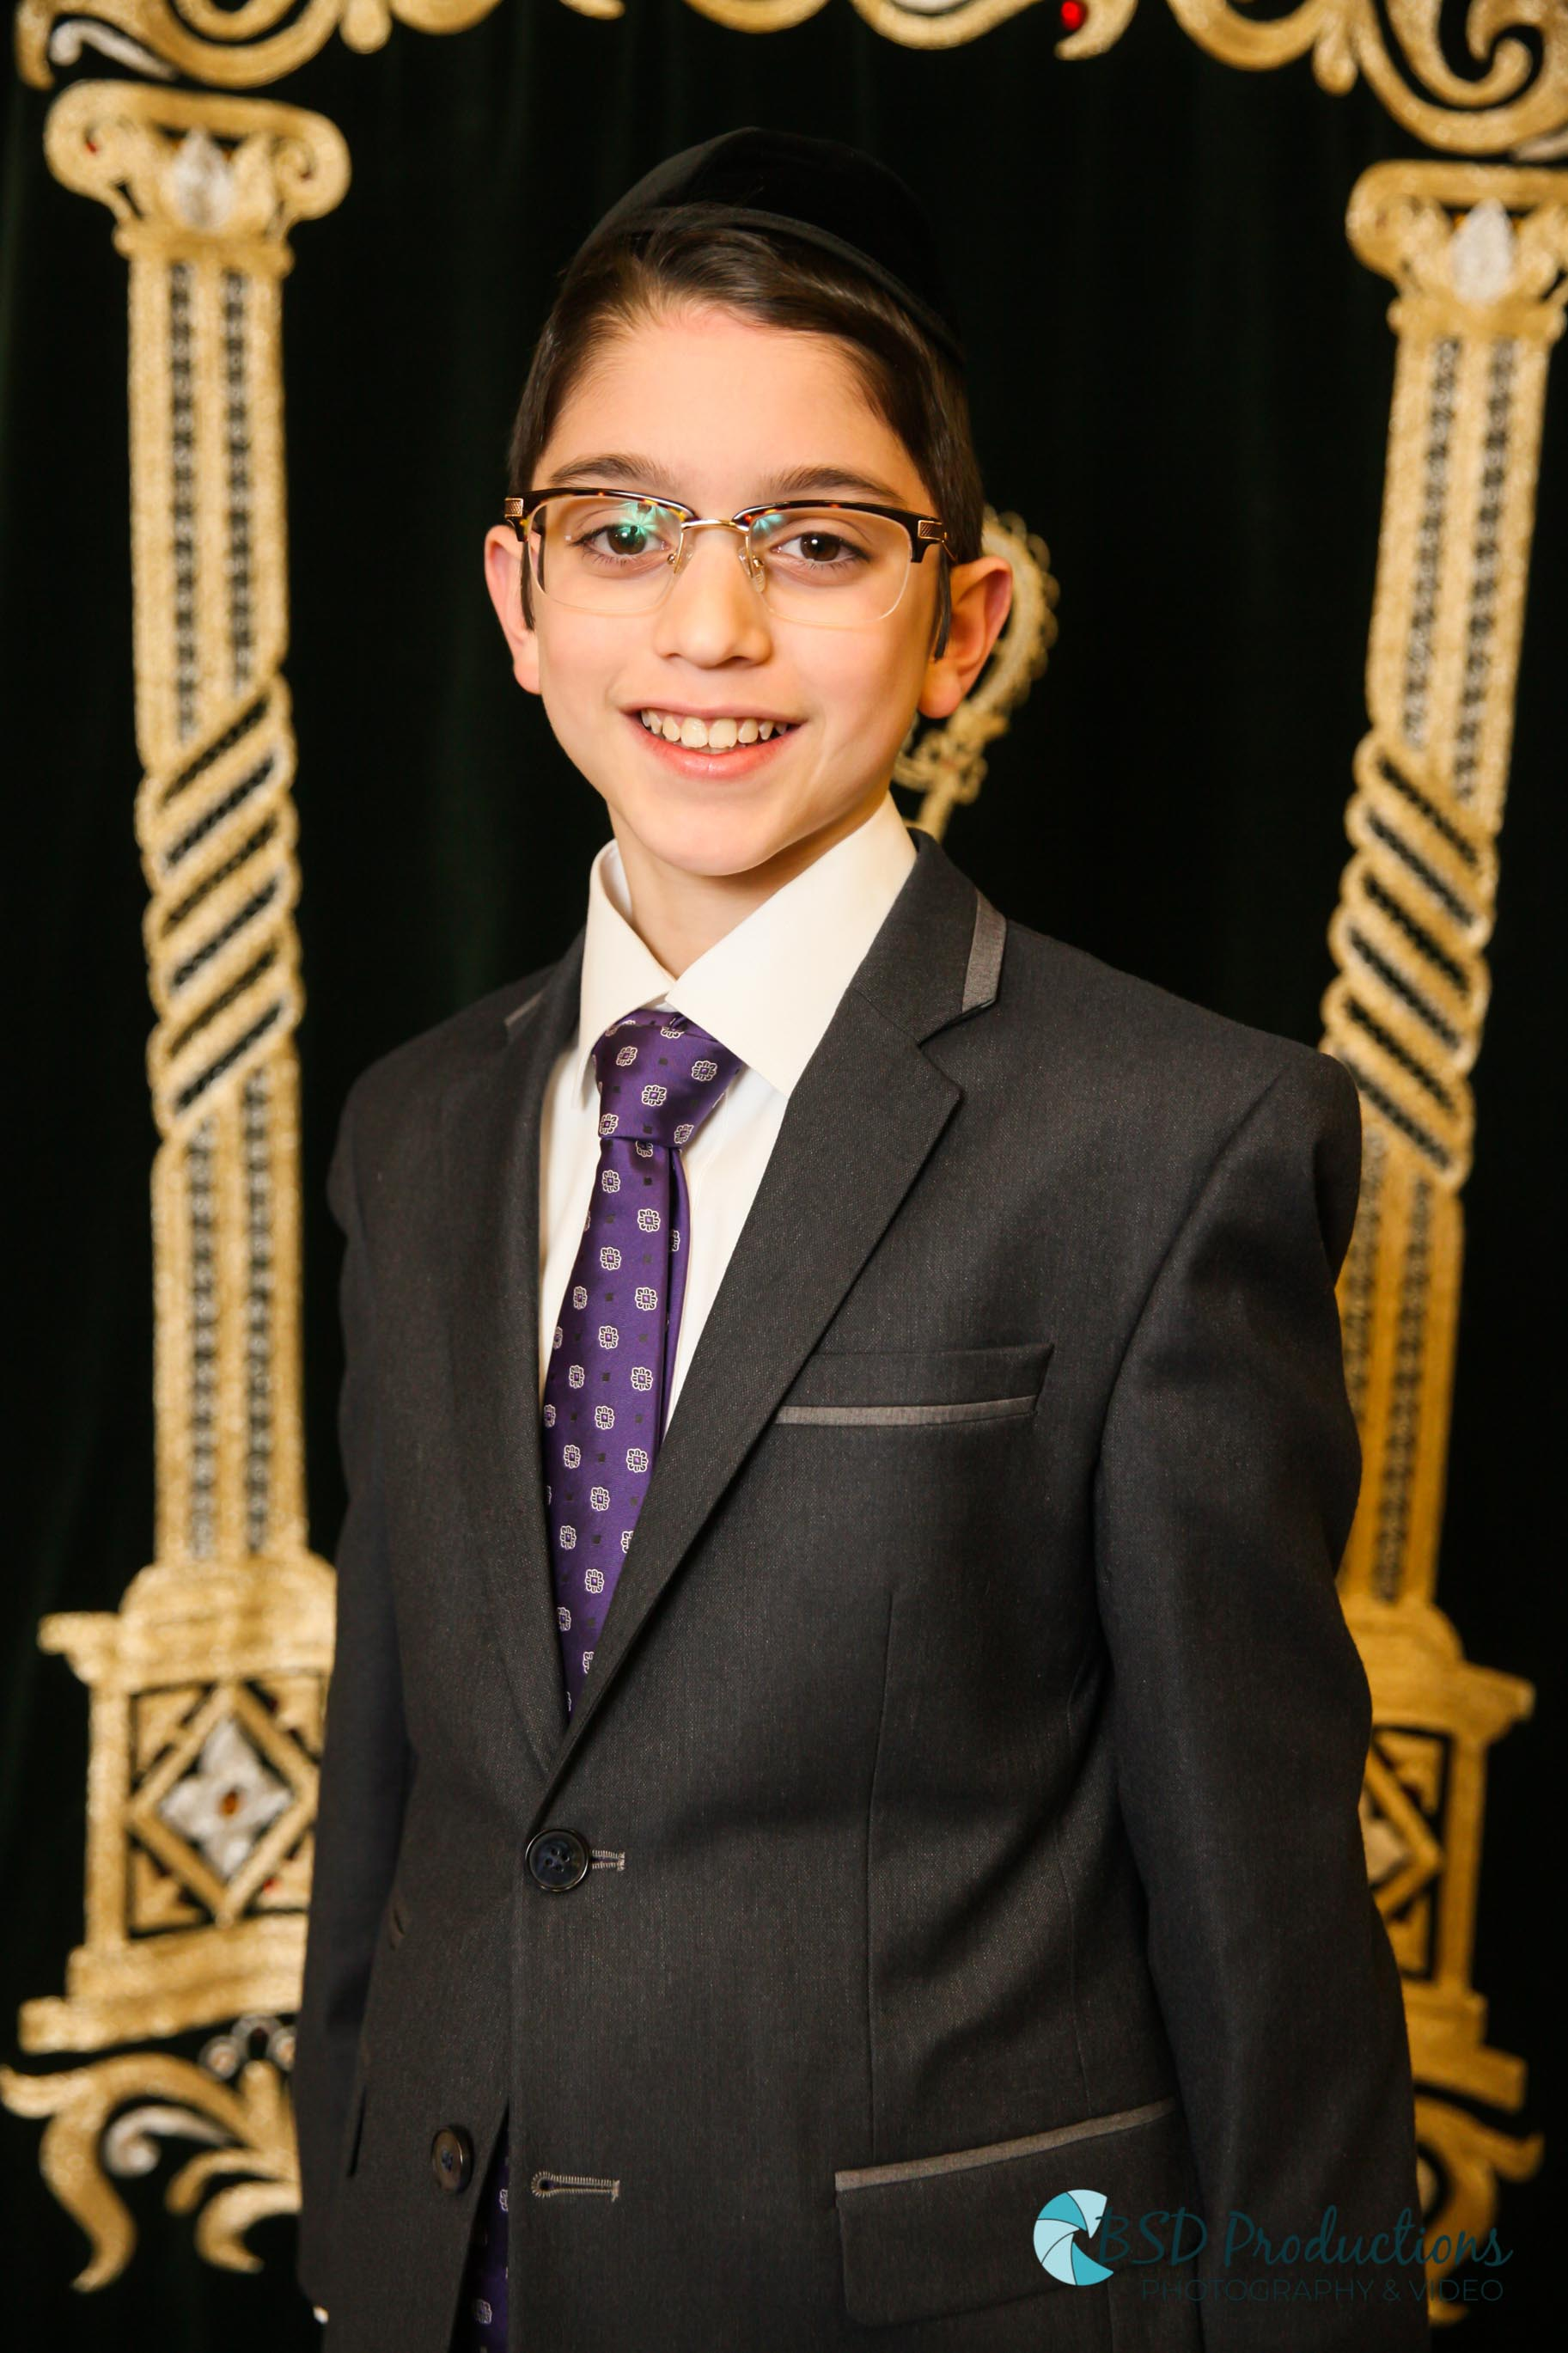 IMG_1525 Bar Mitzvah – BSD Prodcutions Photography